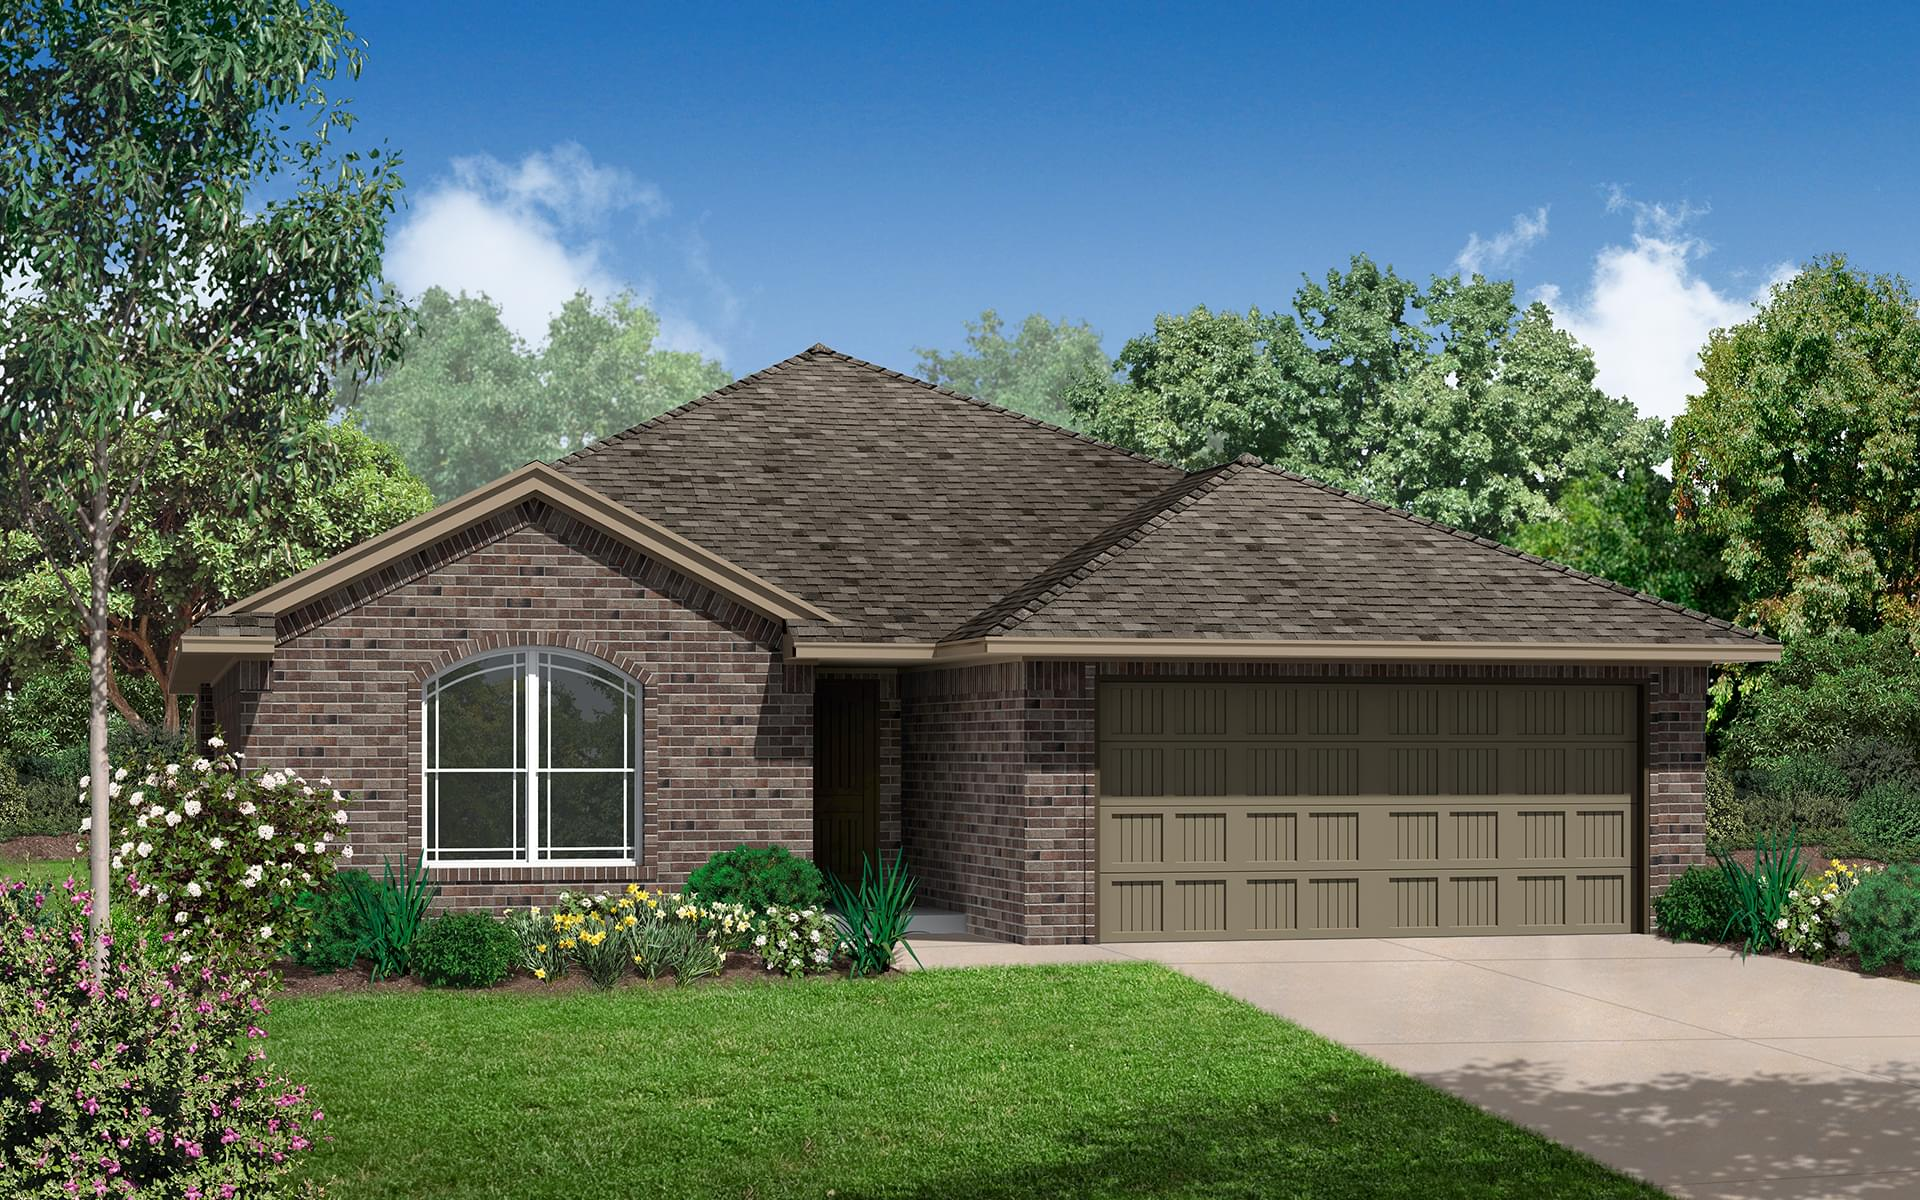 The Washington New Home In Glenpool Ok From Home Creations